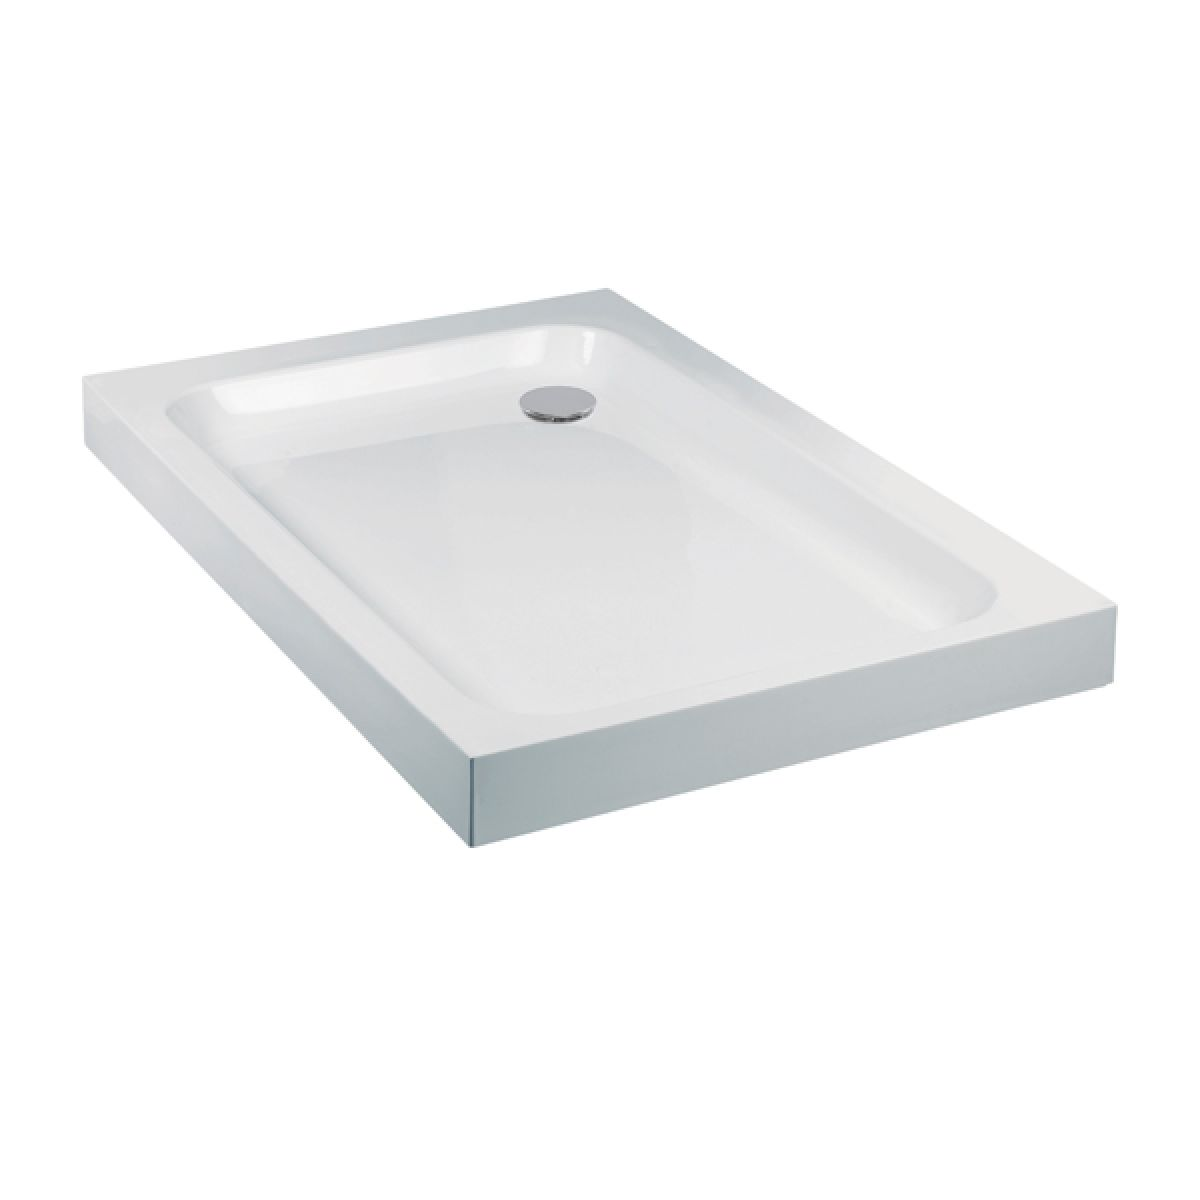 Frontline Standard Rectanglular Shower Tray 1200 x 900mm